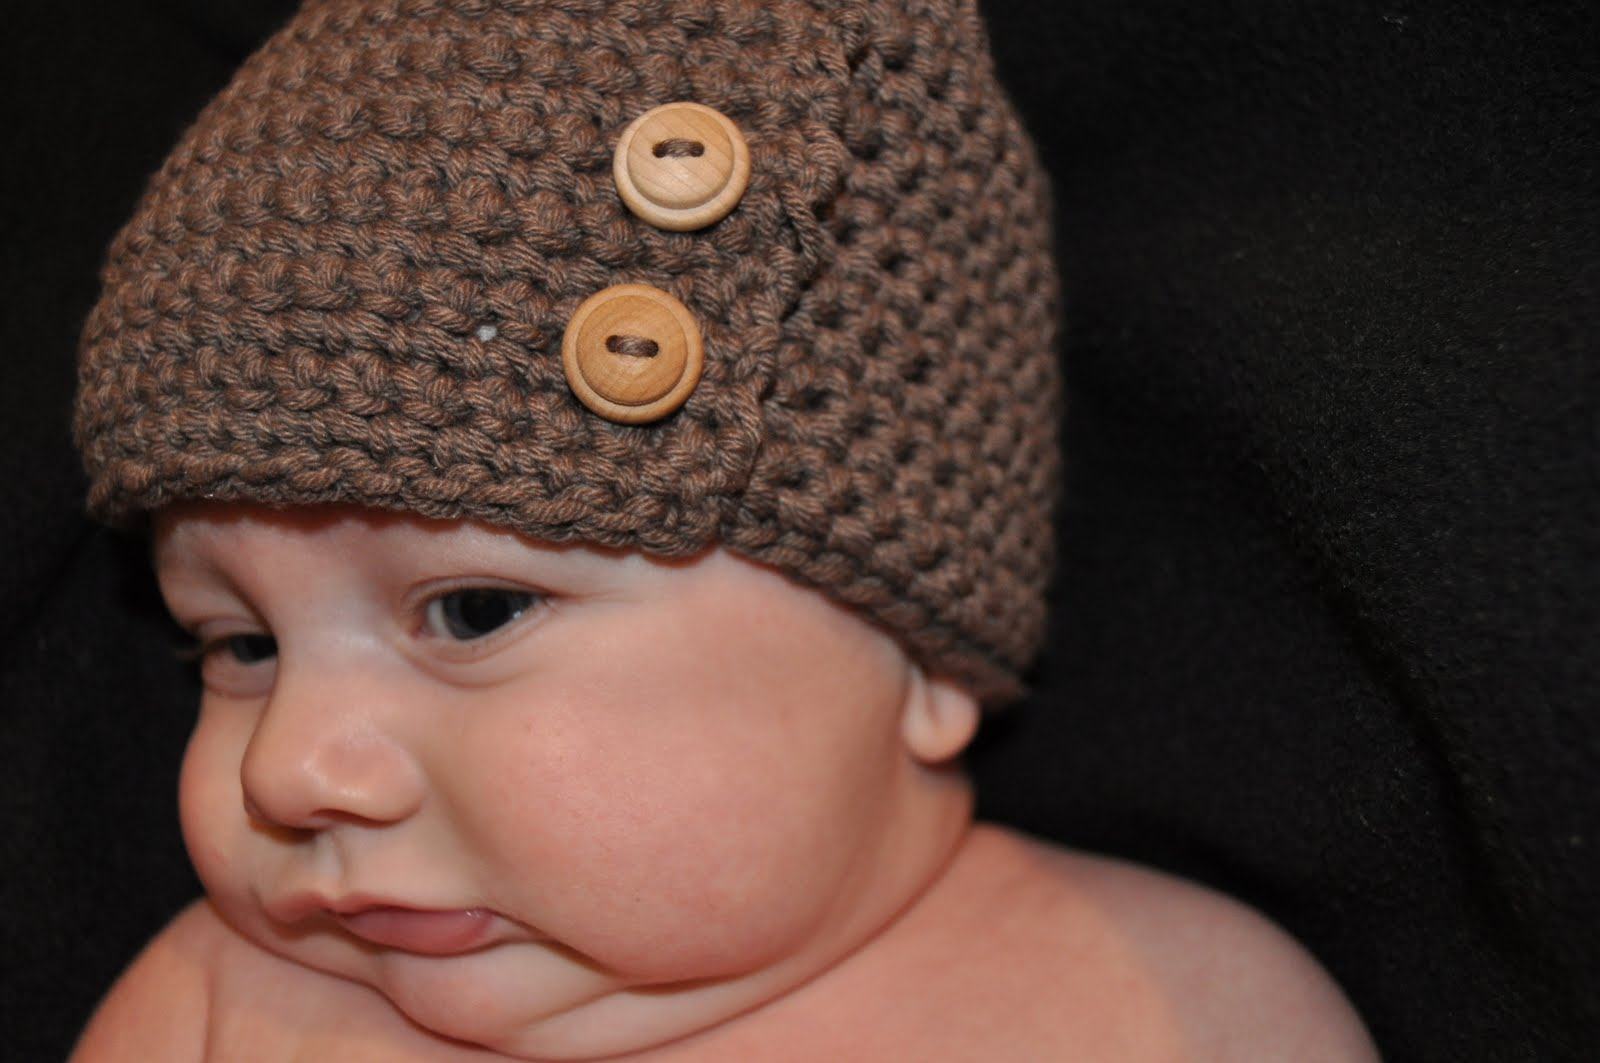 Crochet Patterns Of Baby Hats : crochet baby hat patterns & more from japan Little ...